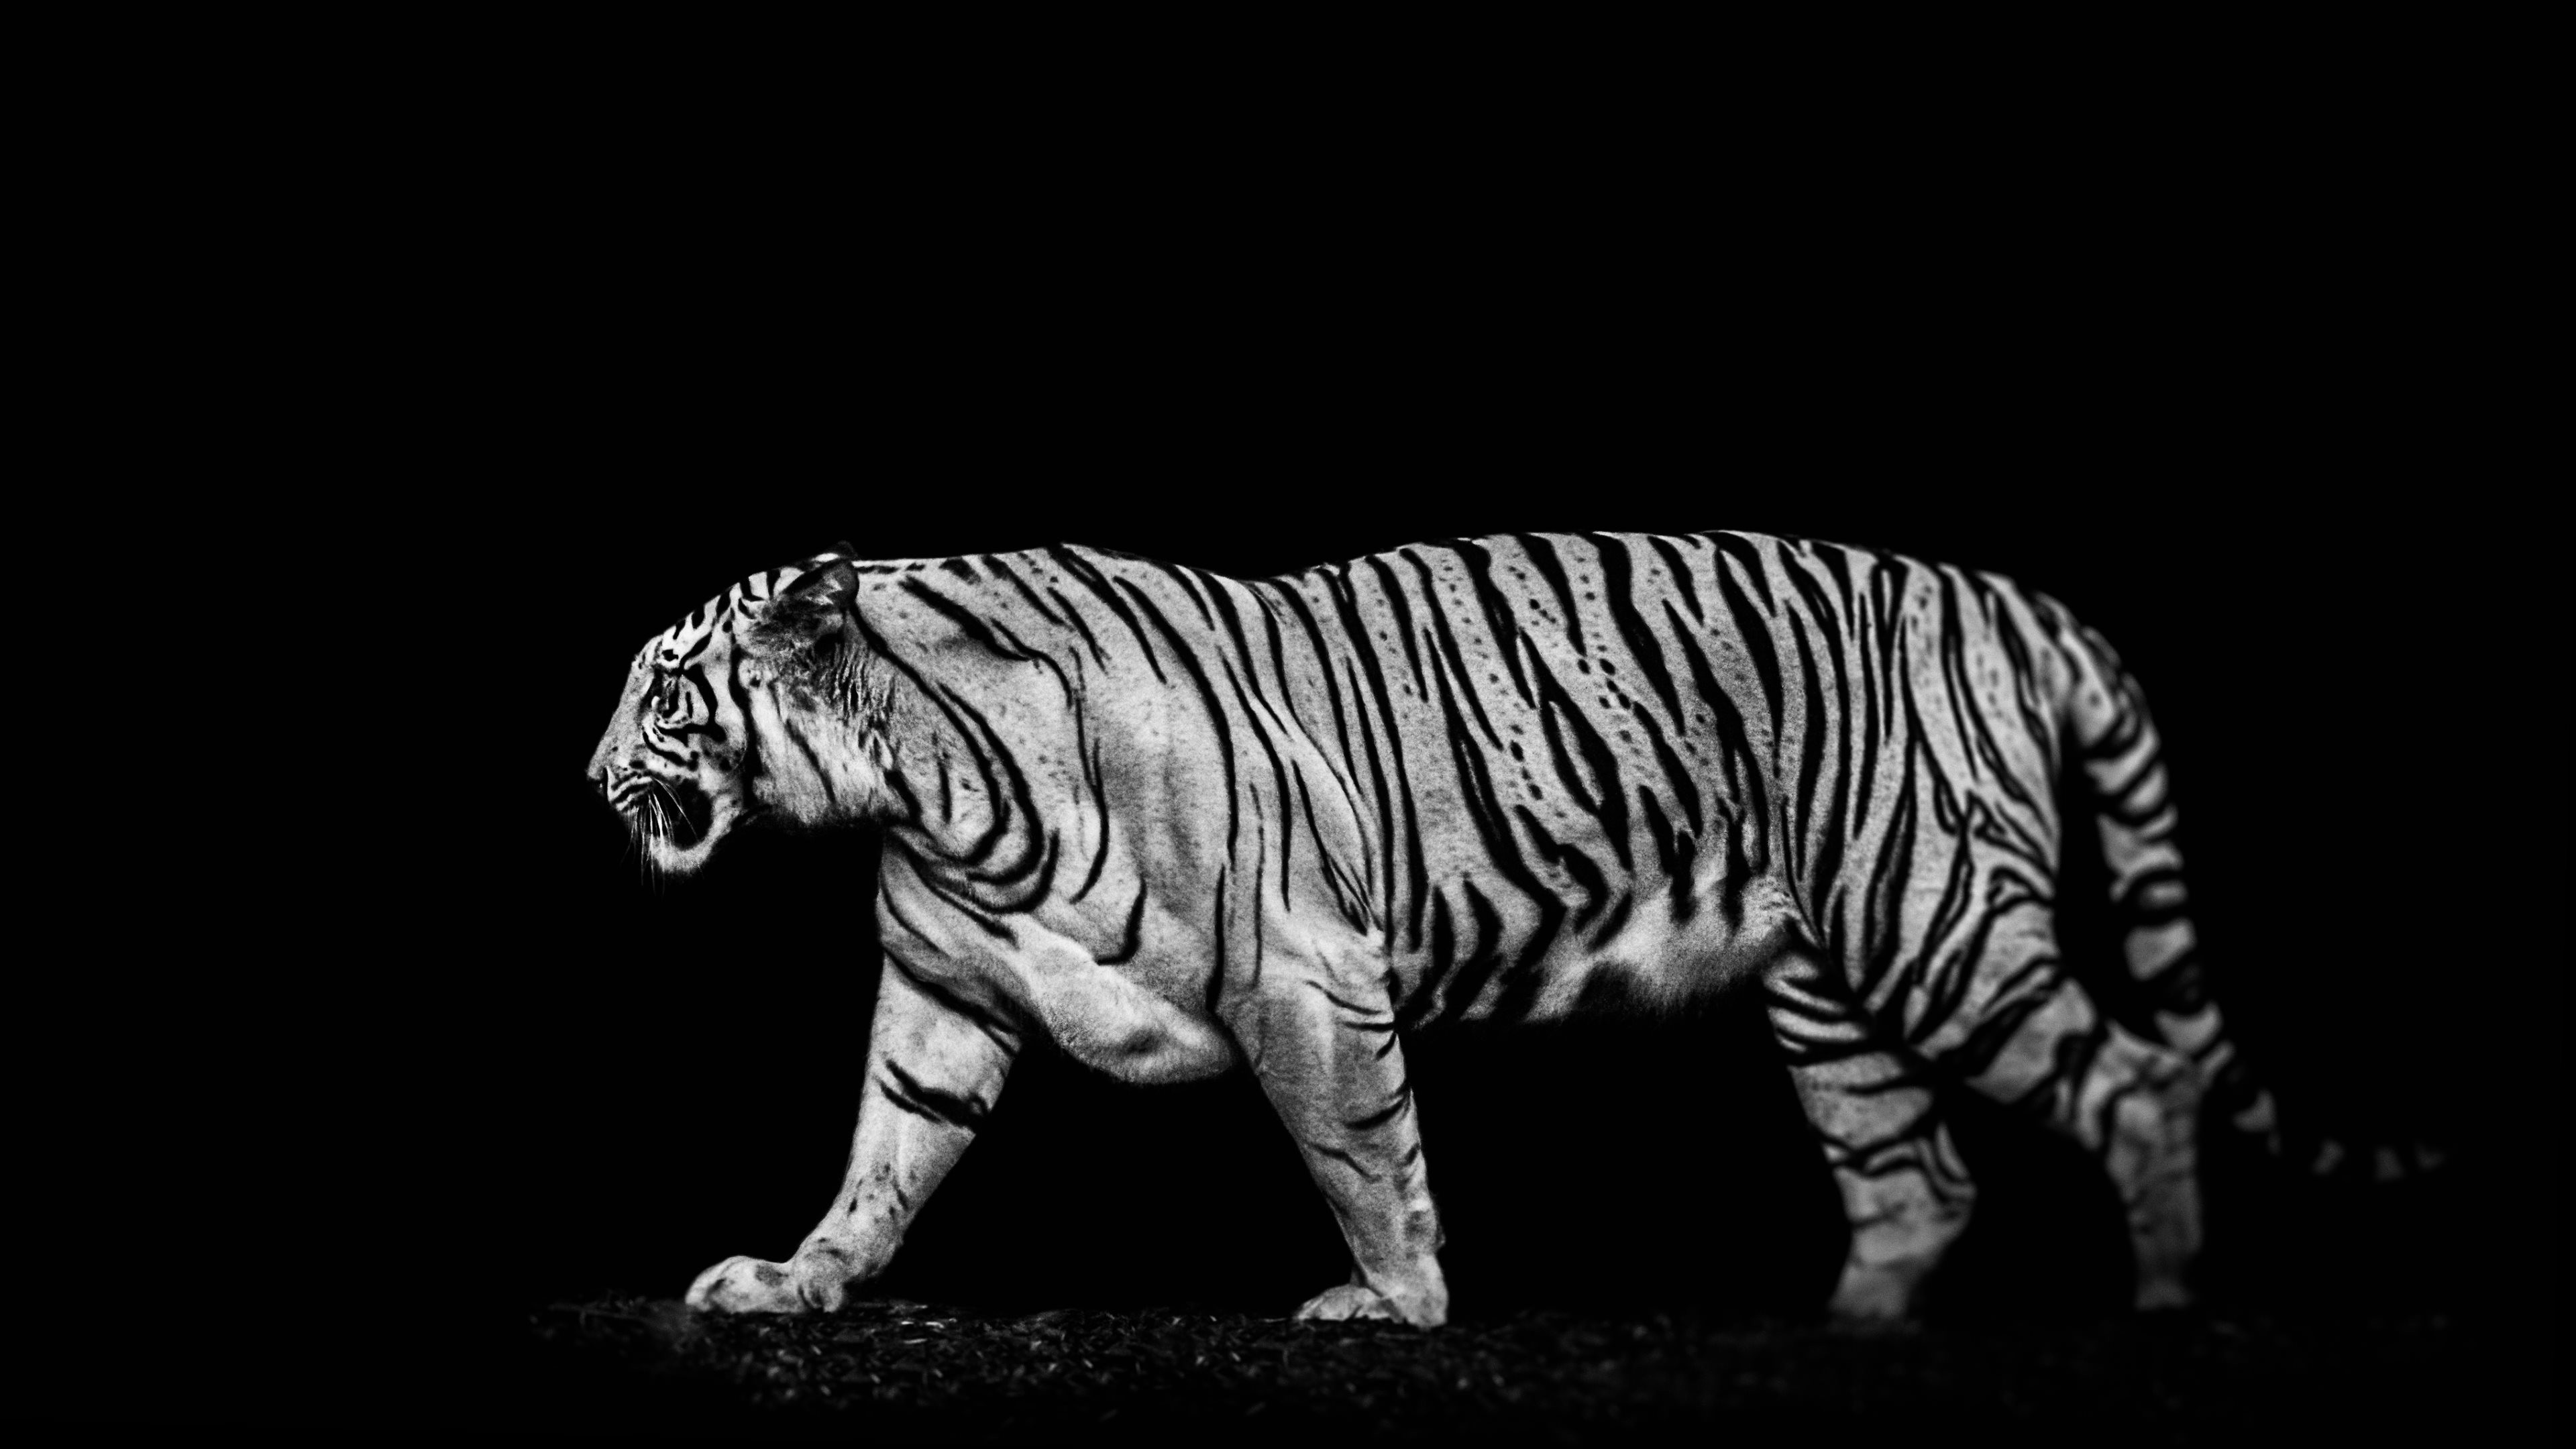 Tigers backgrounds 69 images - White tiger wallpaper free download ...